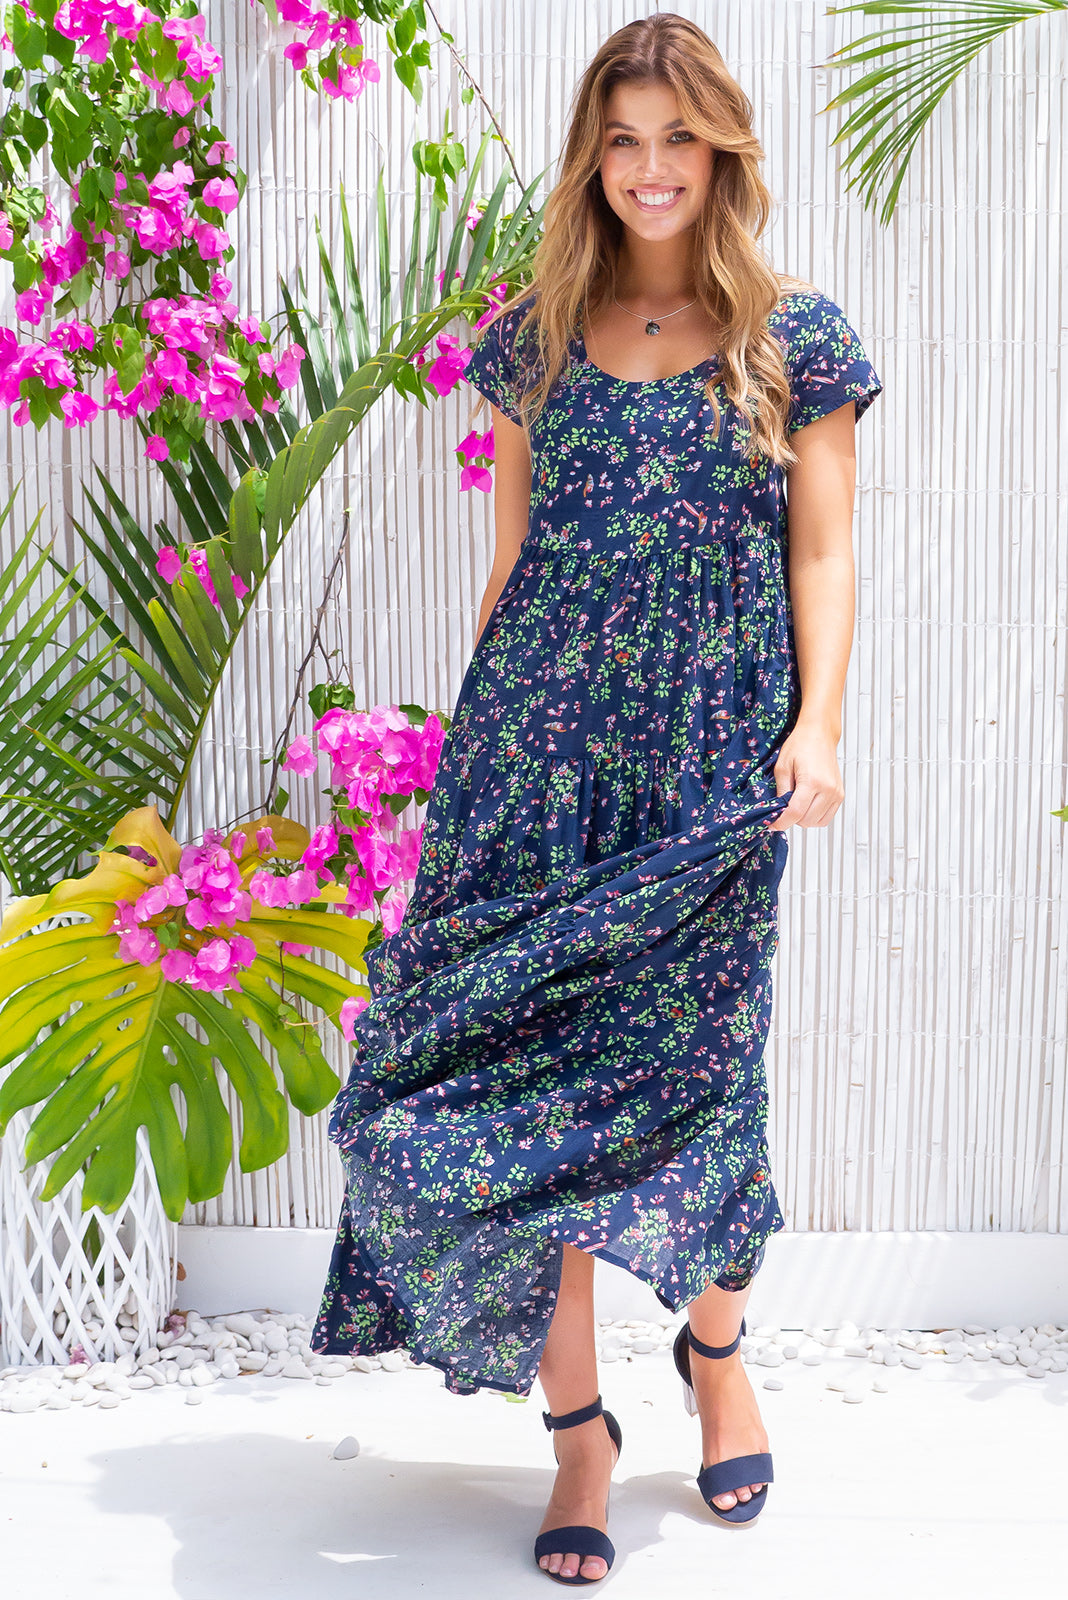 Lucky Lulu Navy Bayou Maxi Dress is a must-have navy dress featuring scooped neckline, cap sleeves, side pockets and a wide tiered skirt a deep navy base colour with floral print in woven 100% cotton.